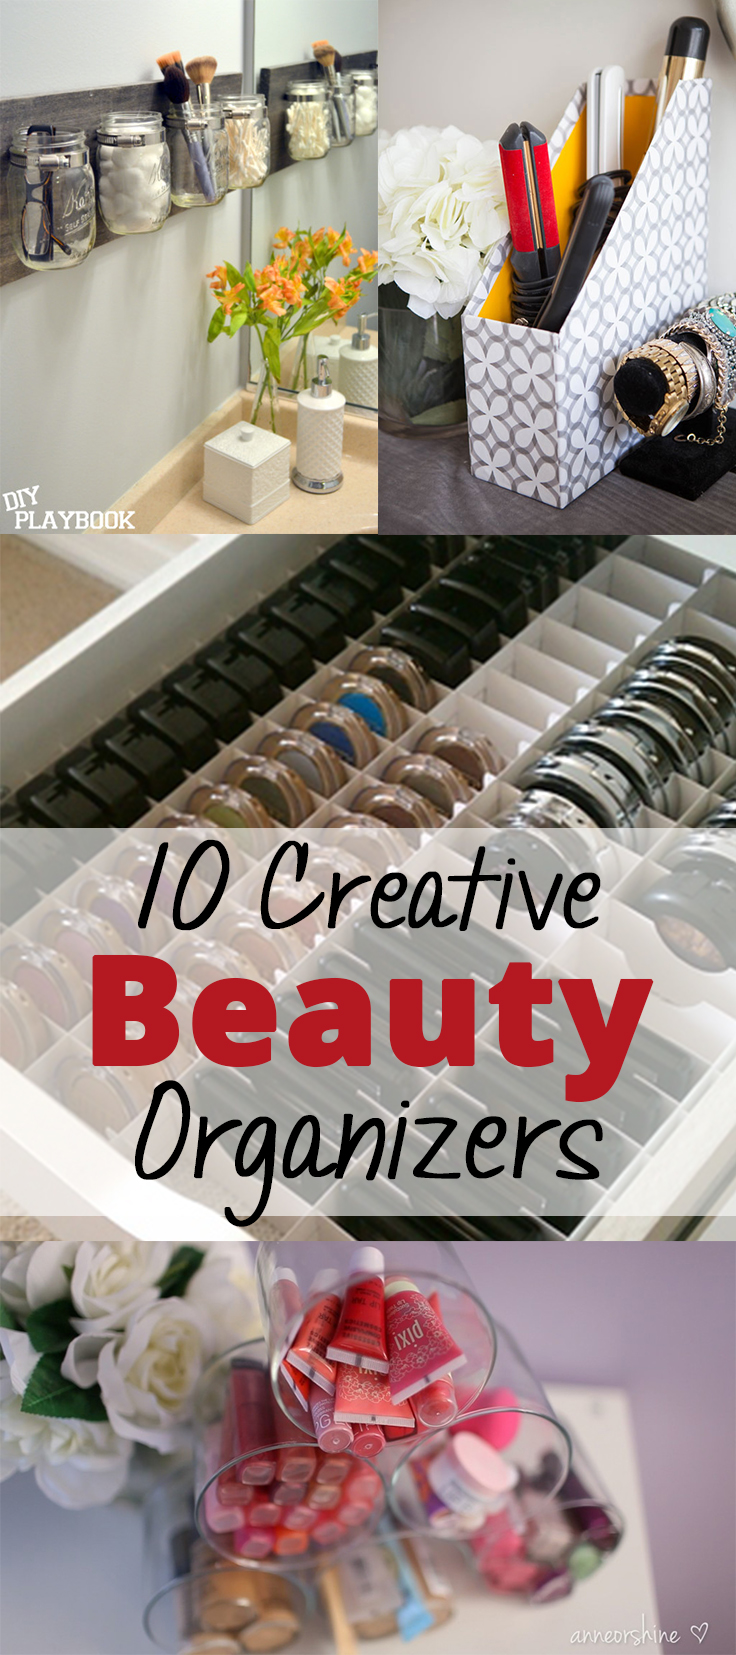 10 Creative Beauty Organizers